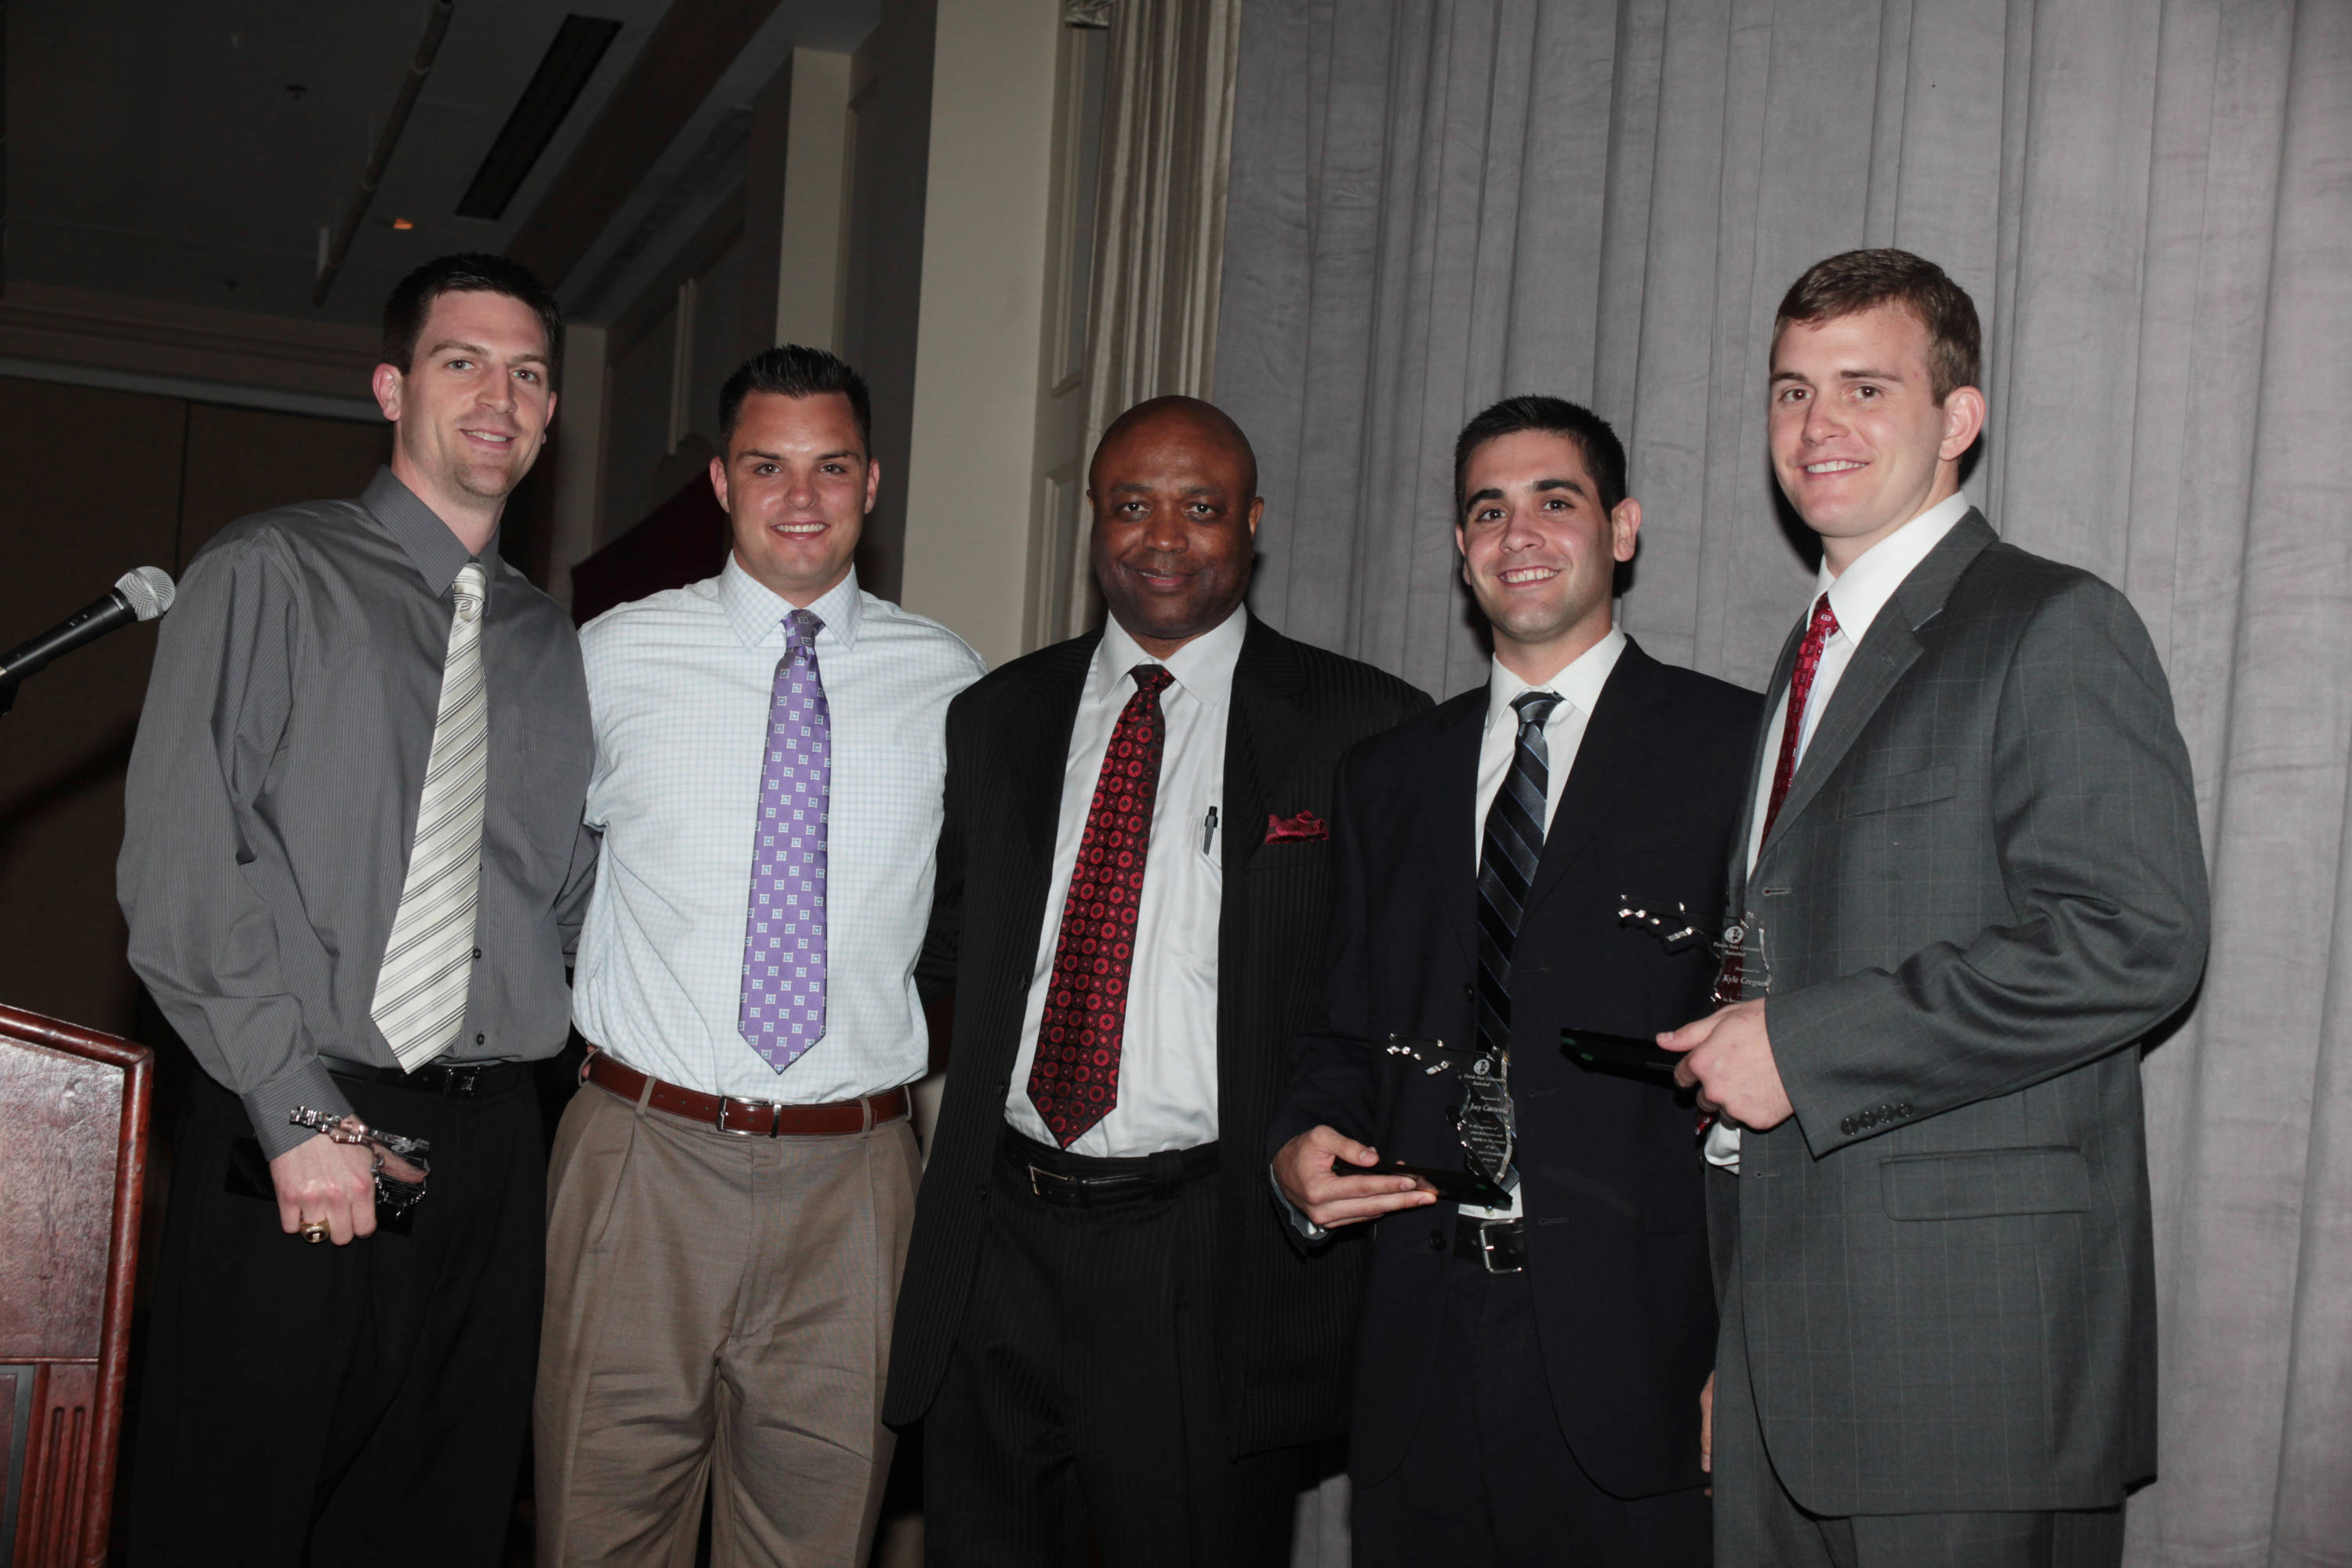 2011 Men's Basketball Banquet - Manager Awards